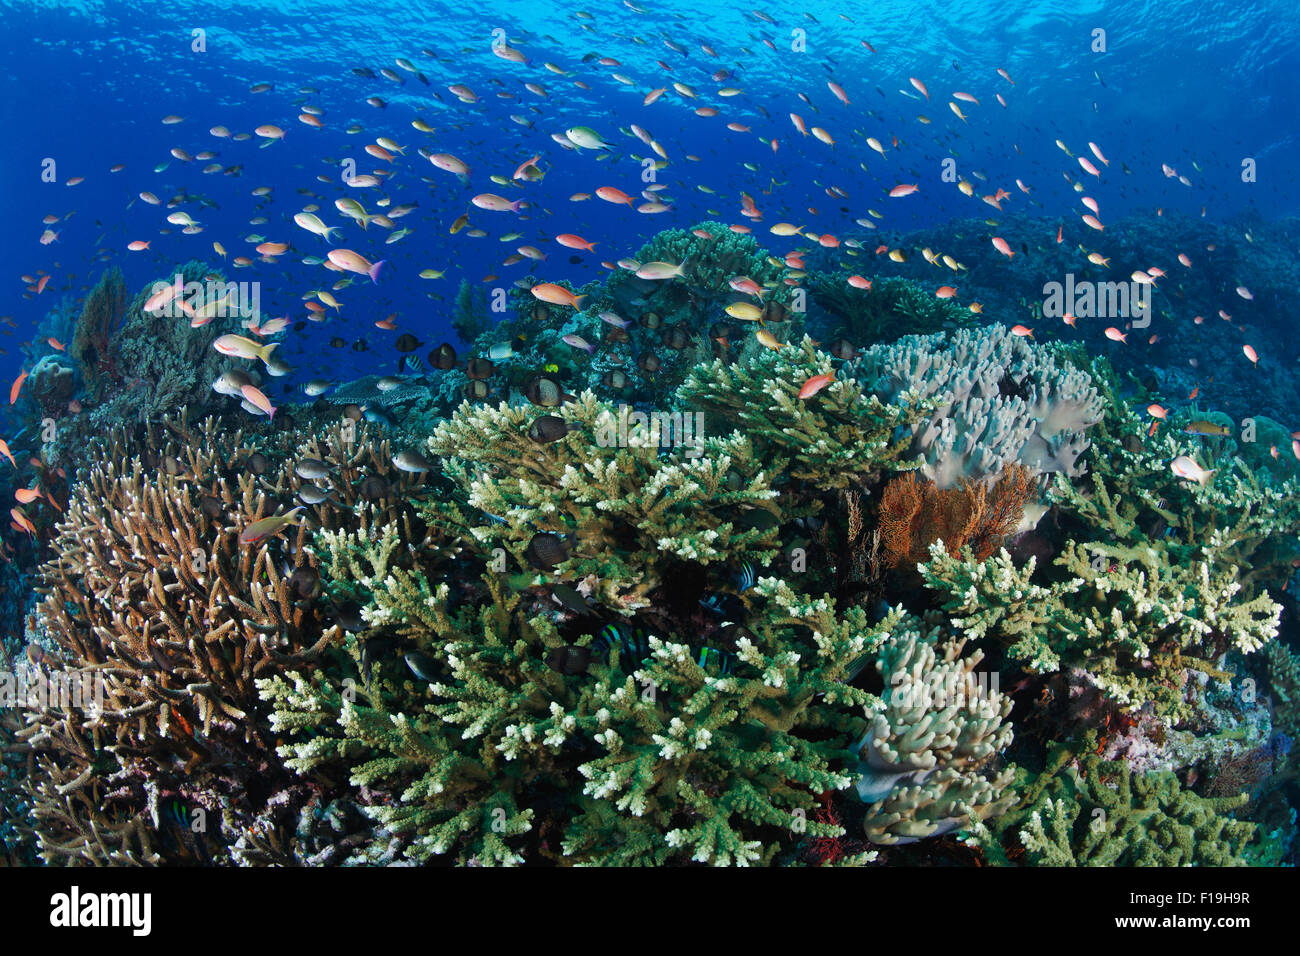 px0665-D. Healthy coral reef bustling with life. Anthias (Pseudanthias spp.) feeding in the current over branching - Stock Image